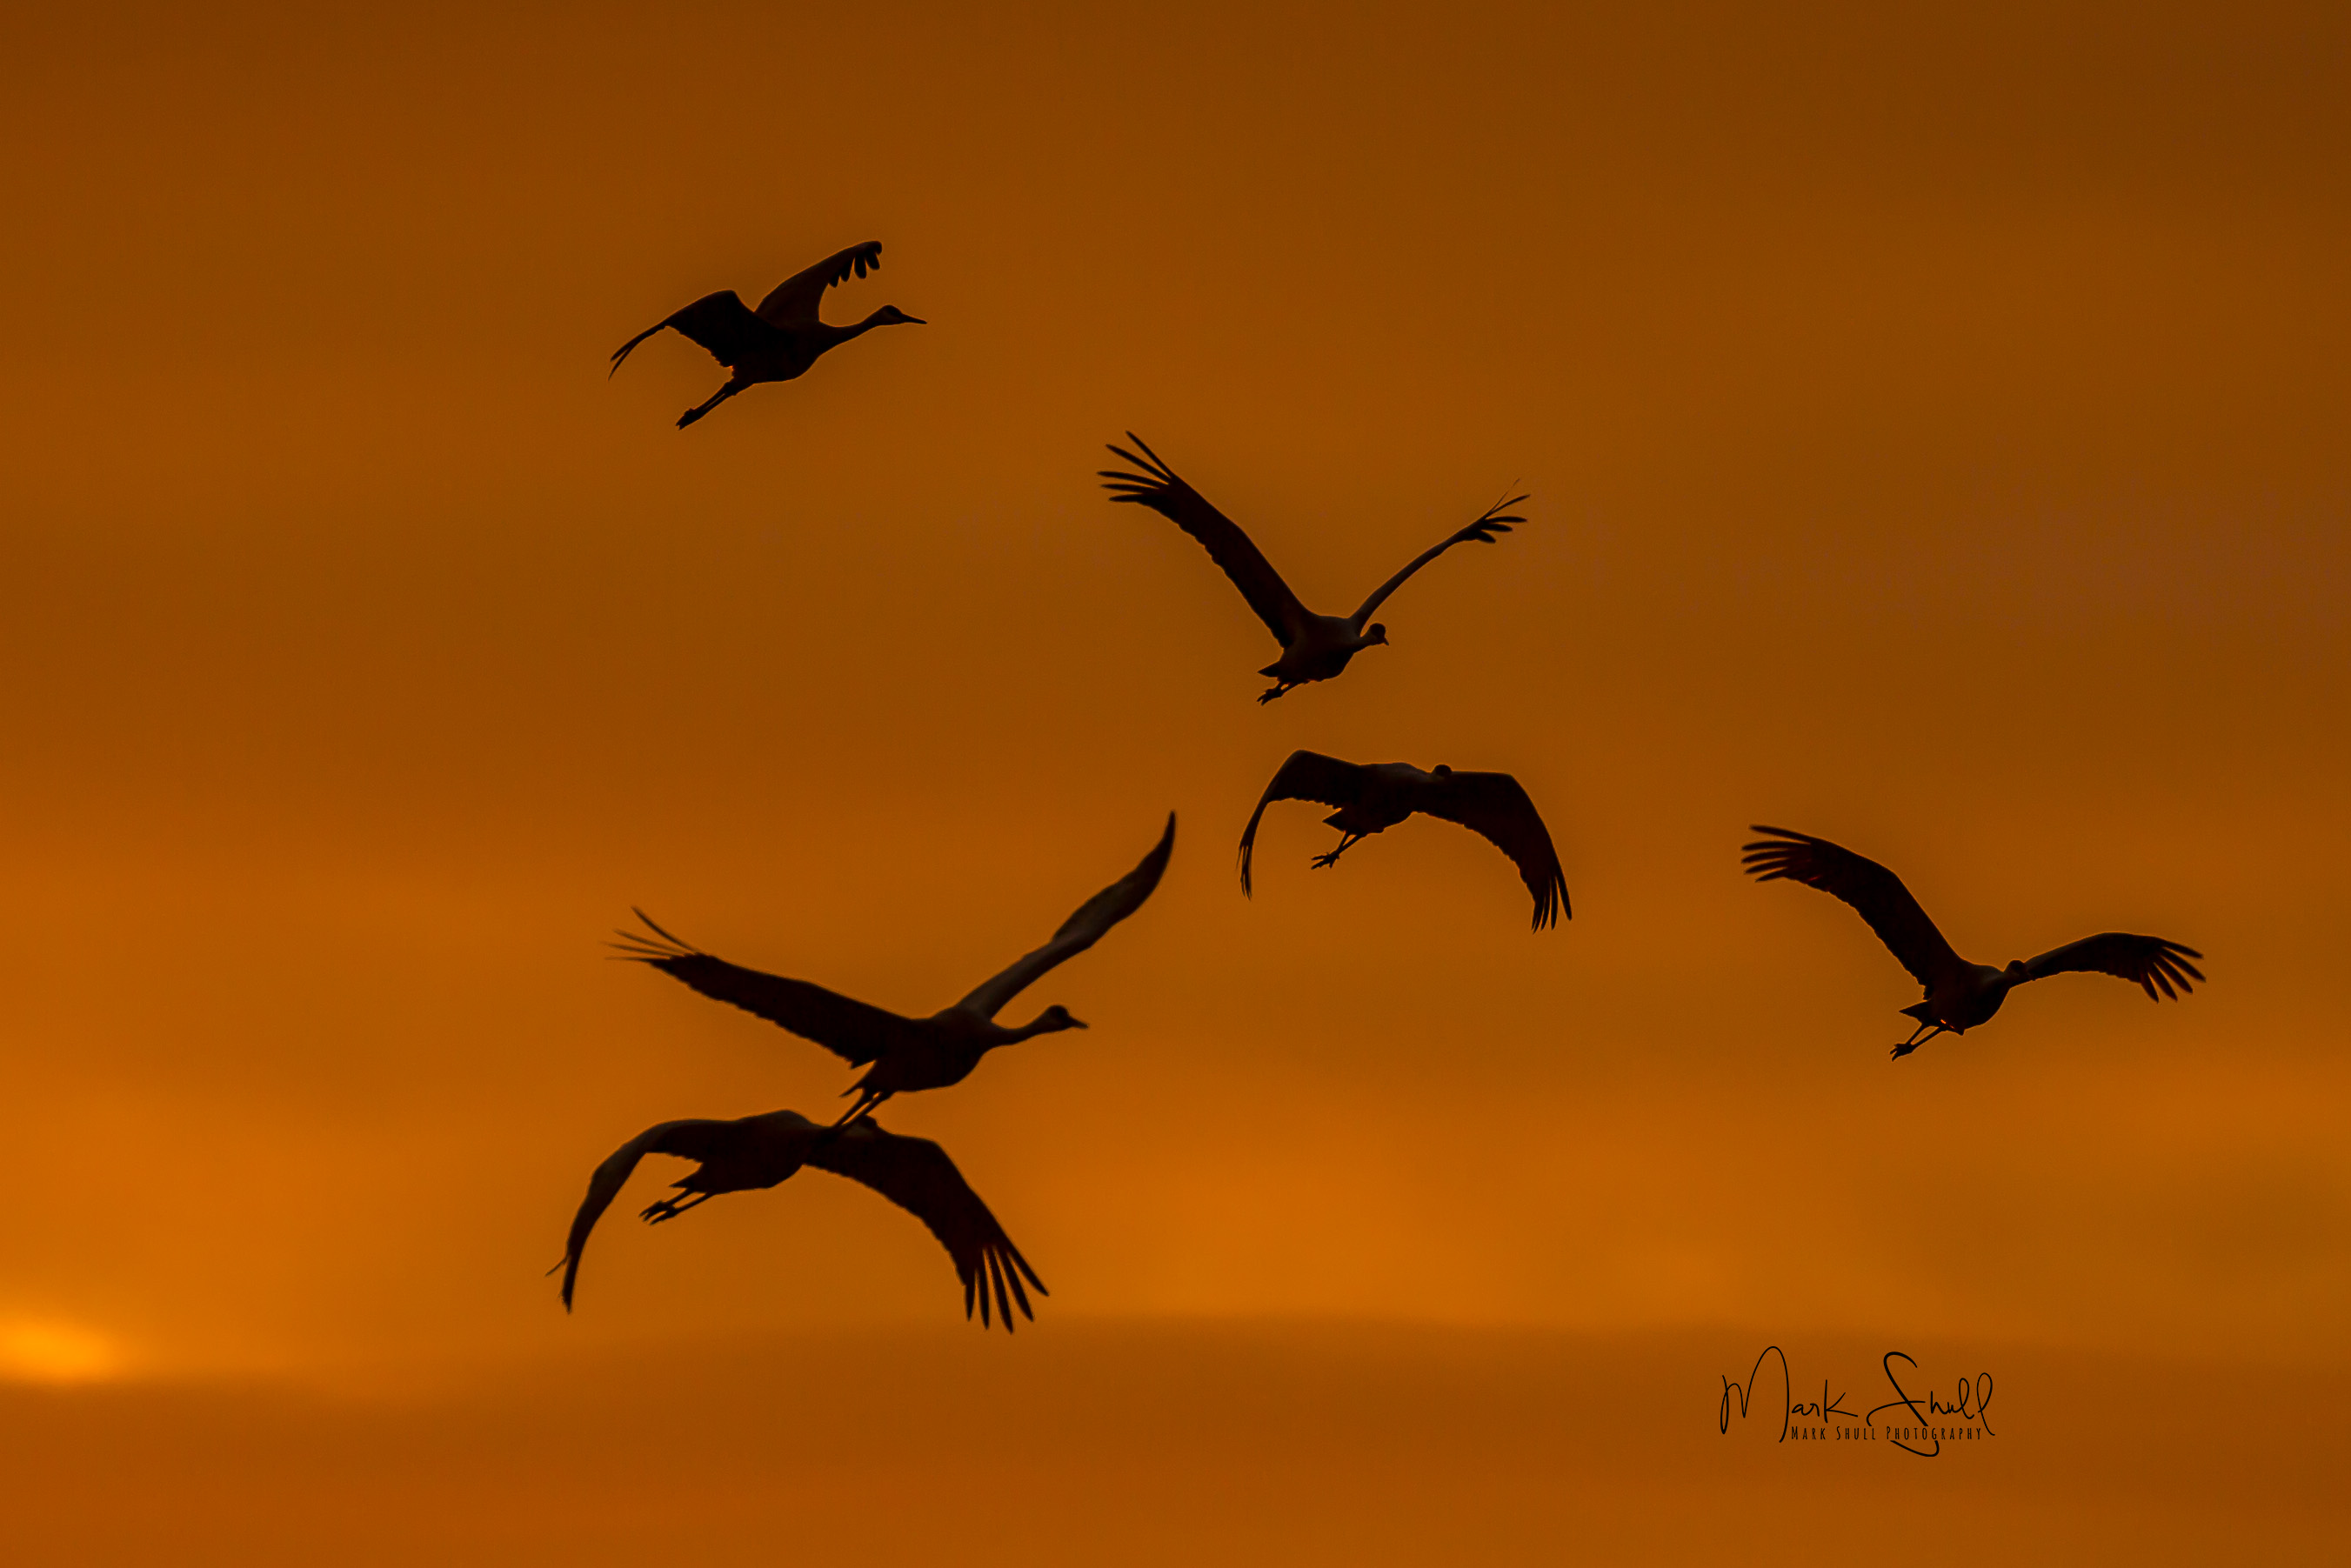 birds sandhill cranes orange silhouette 010517